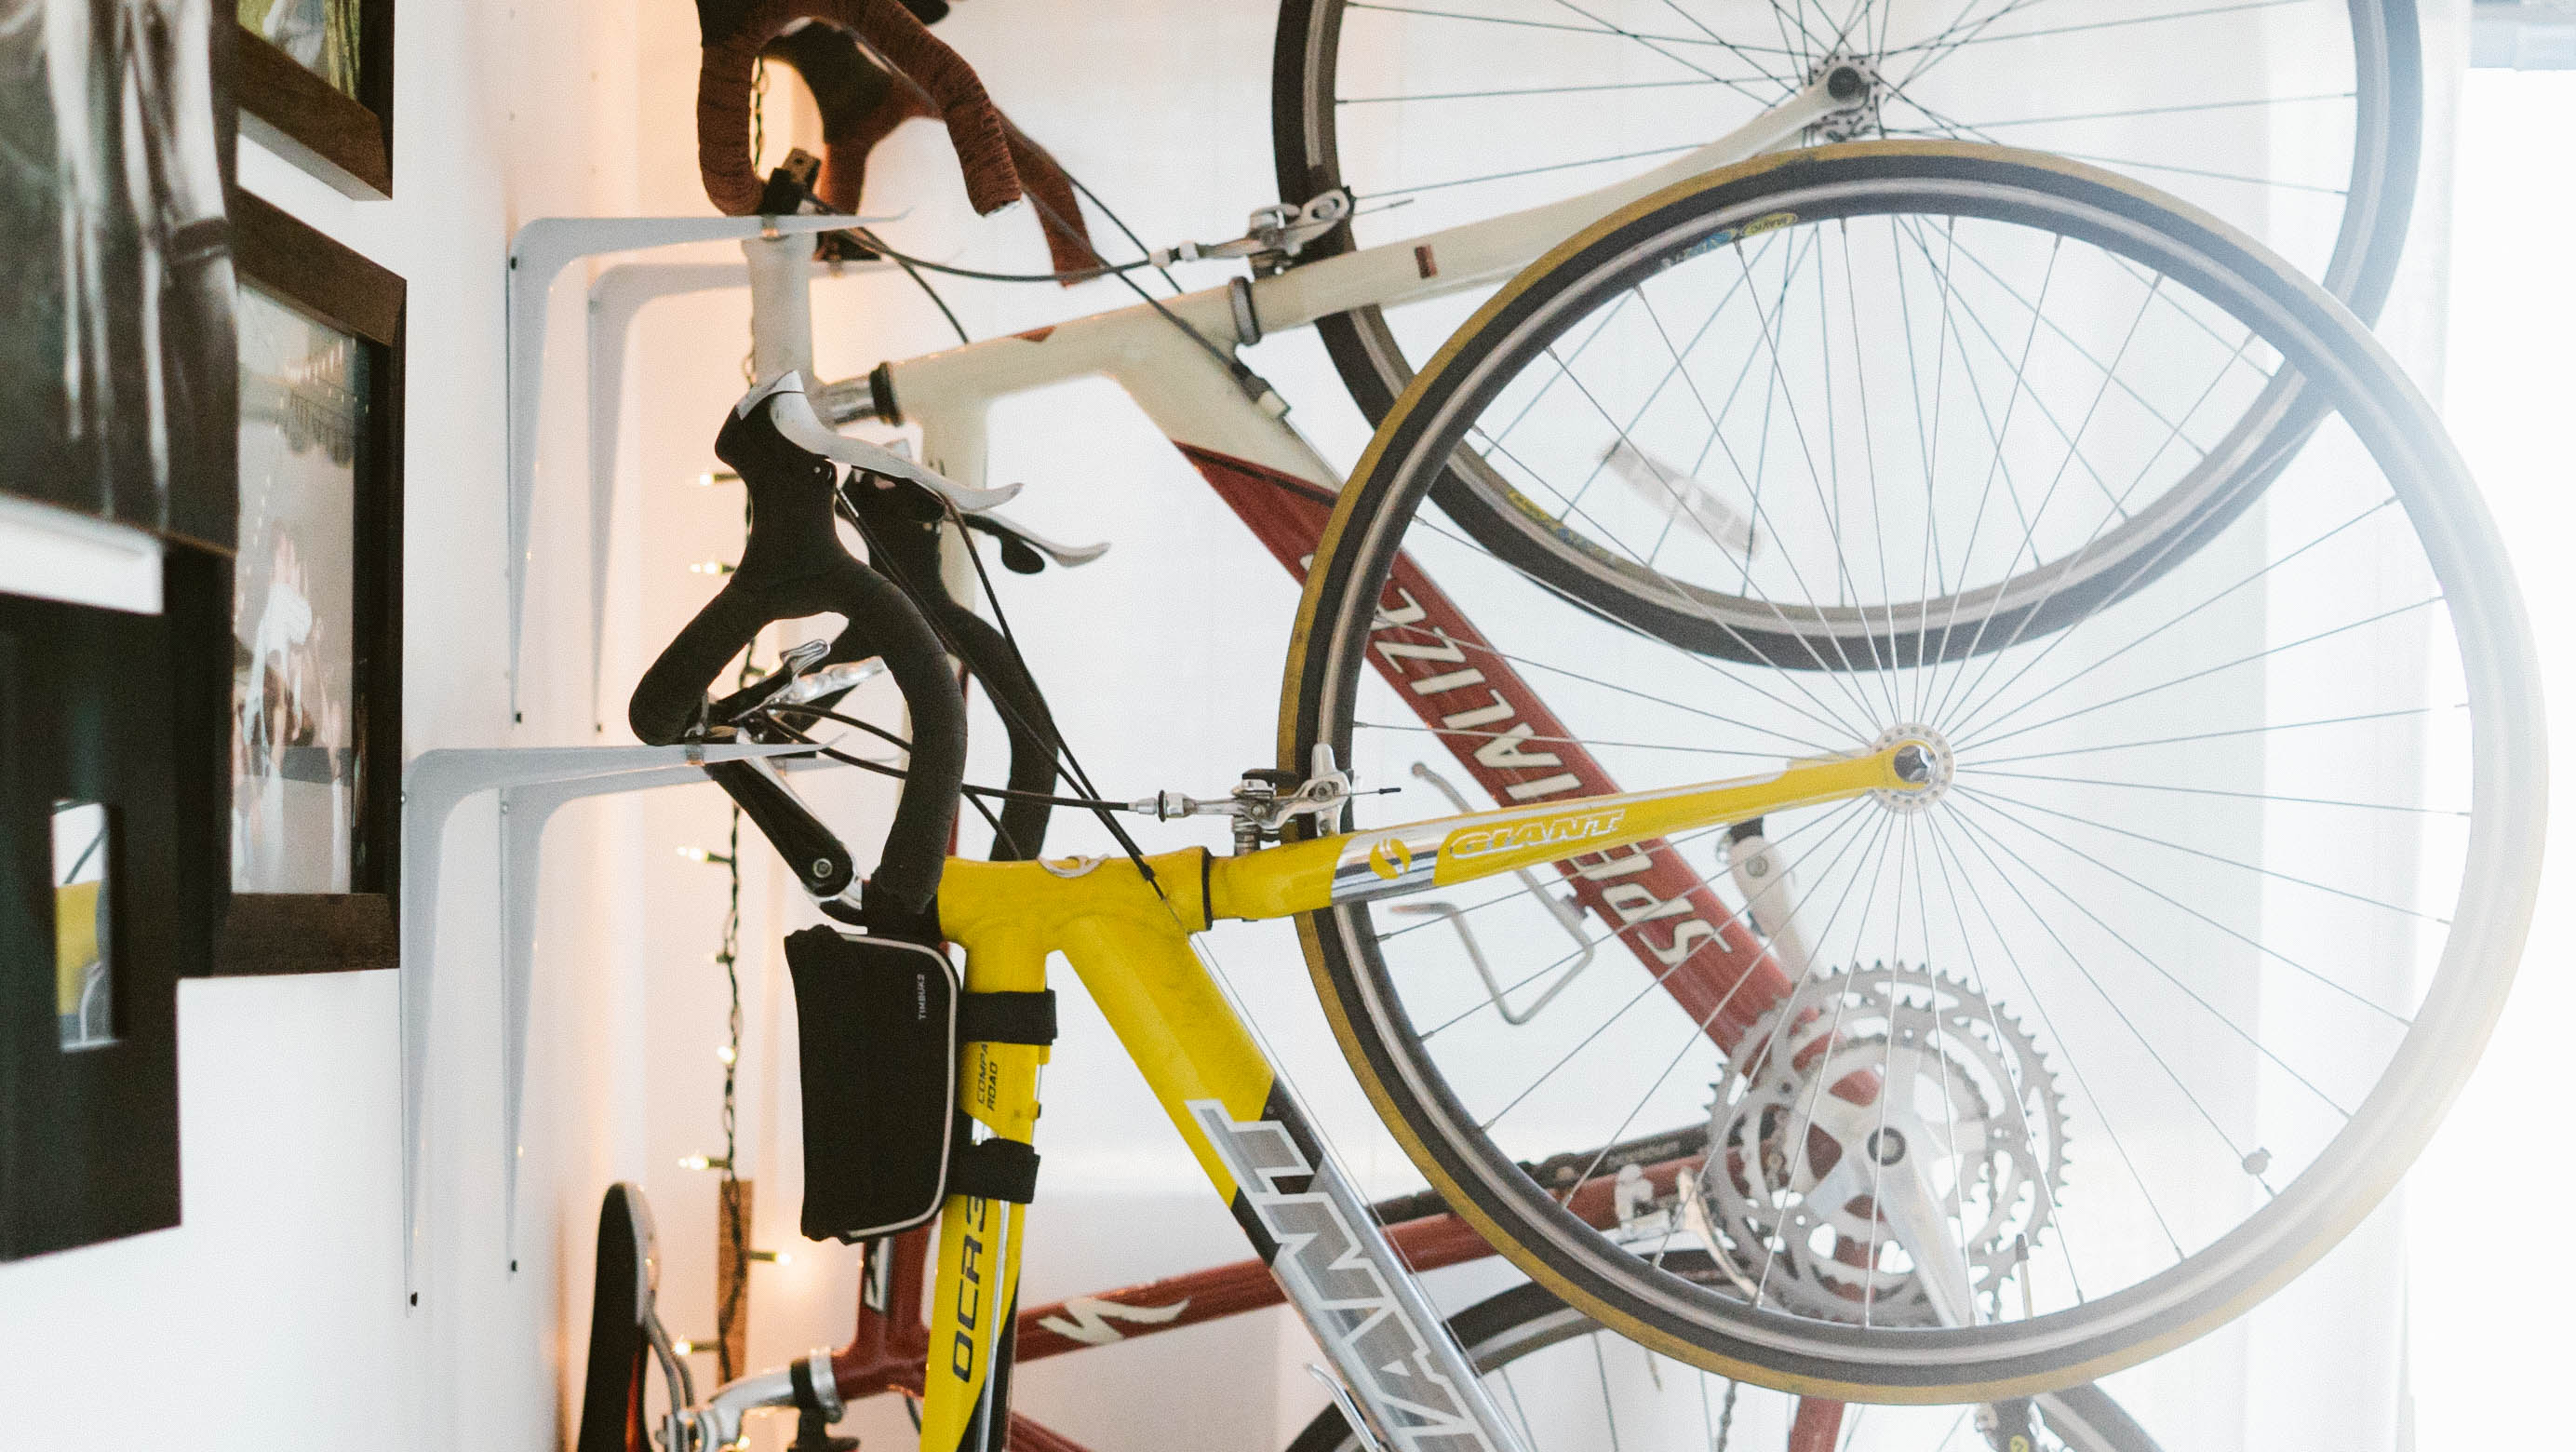 to in multiple system pulley s rack way or your wall without hang garage dahanger a easy for hanging rhyoutubecom bike